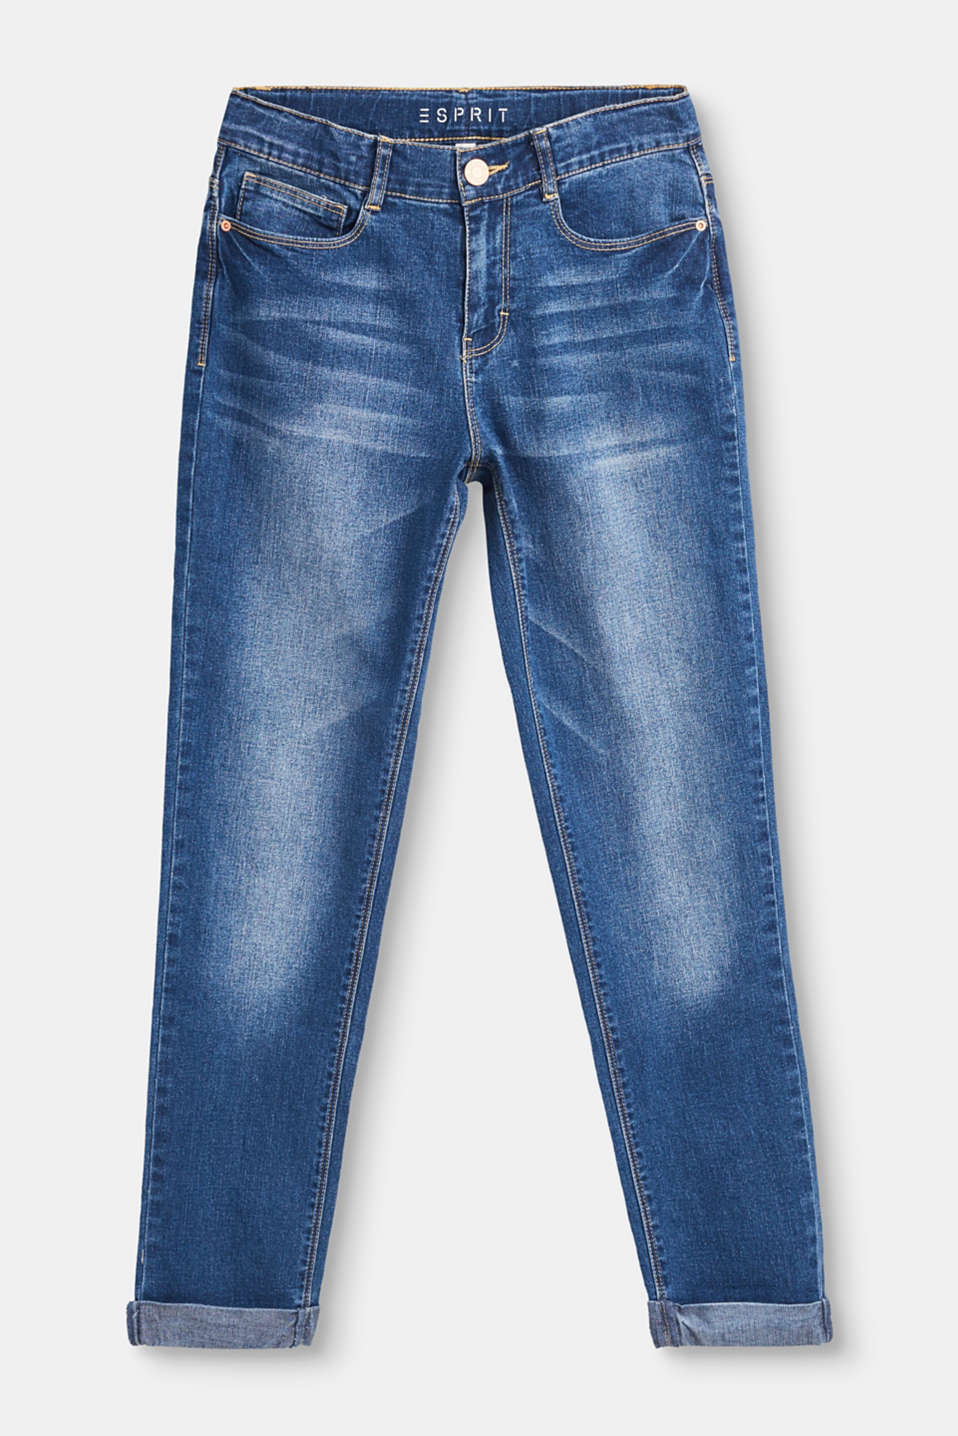 Esprit - Stretch jeans with fixed turn-ups